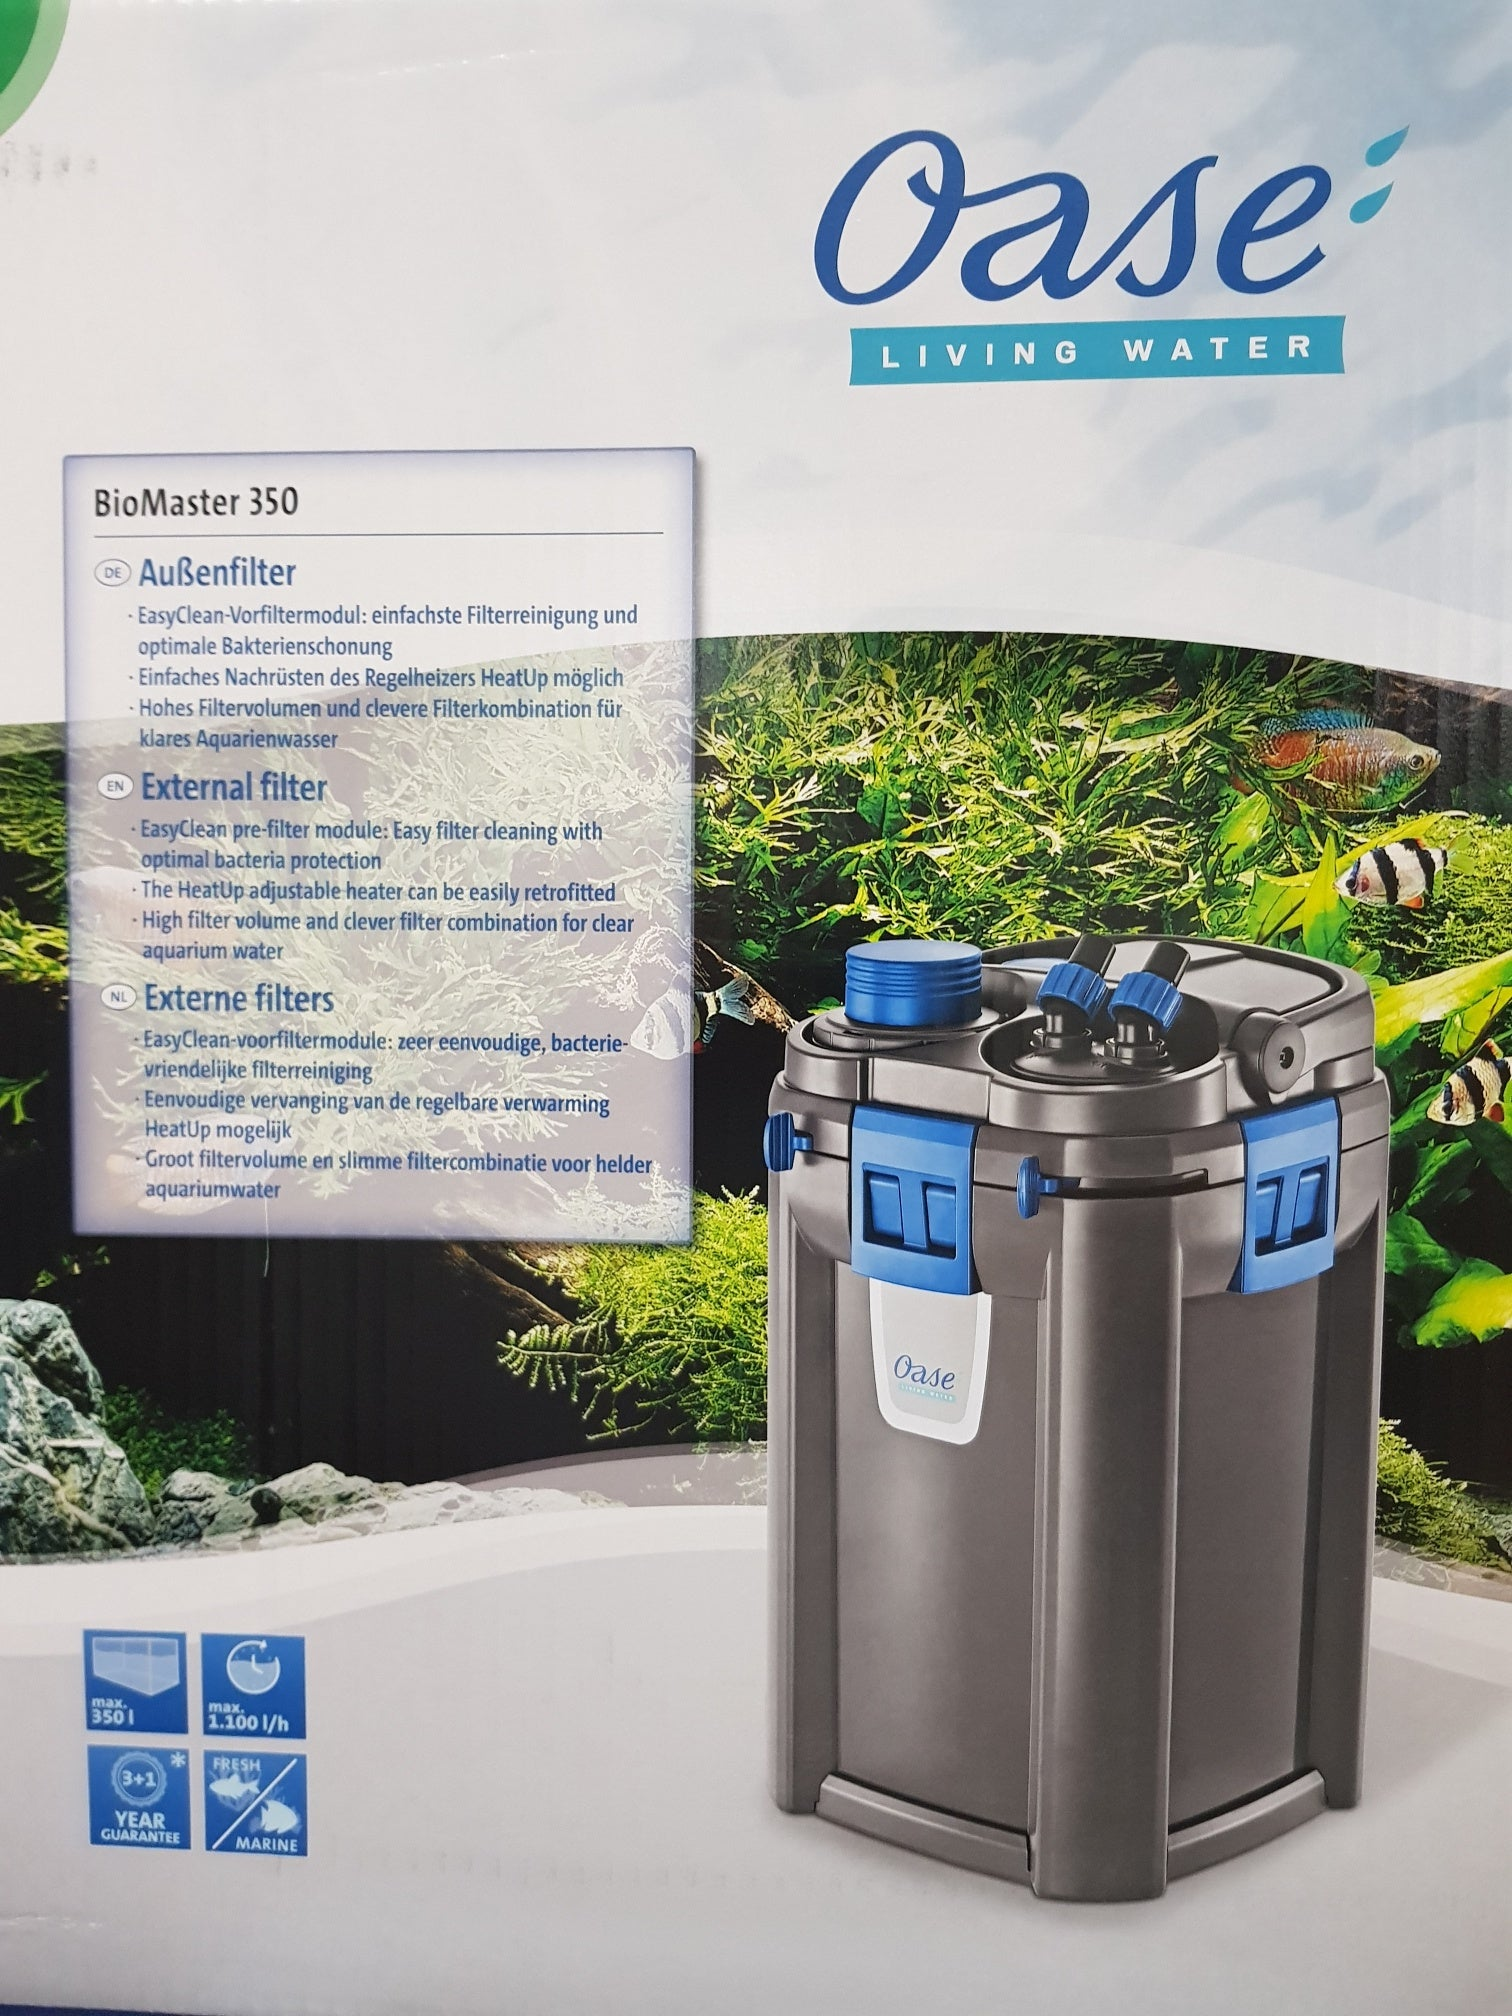 Oase Biomaster canister filters now available in store or at our online store